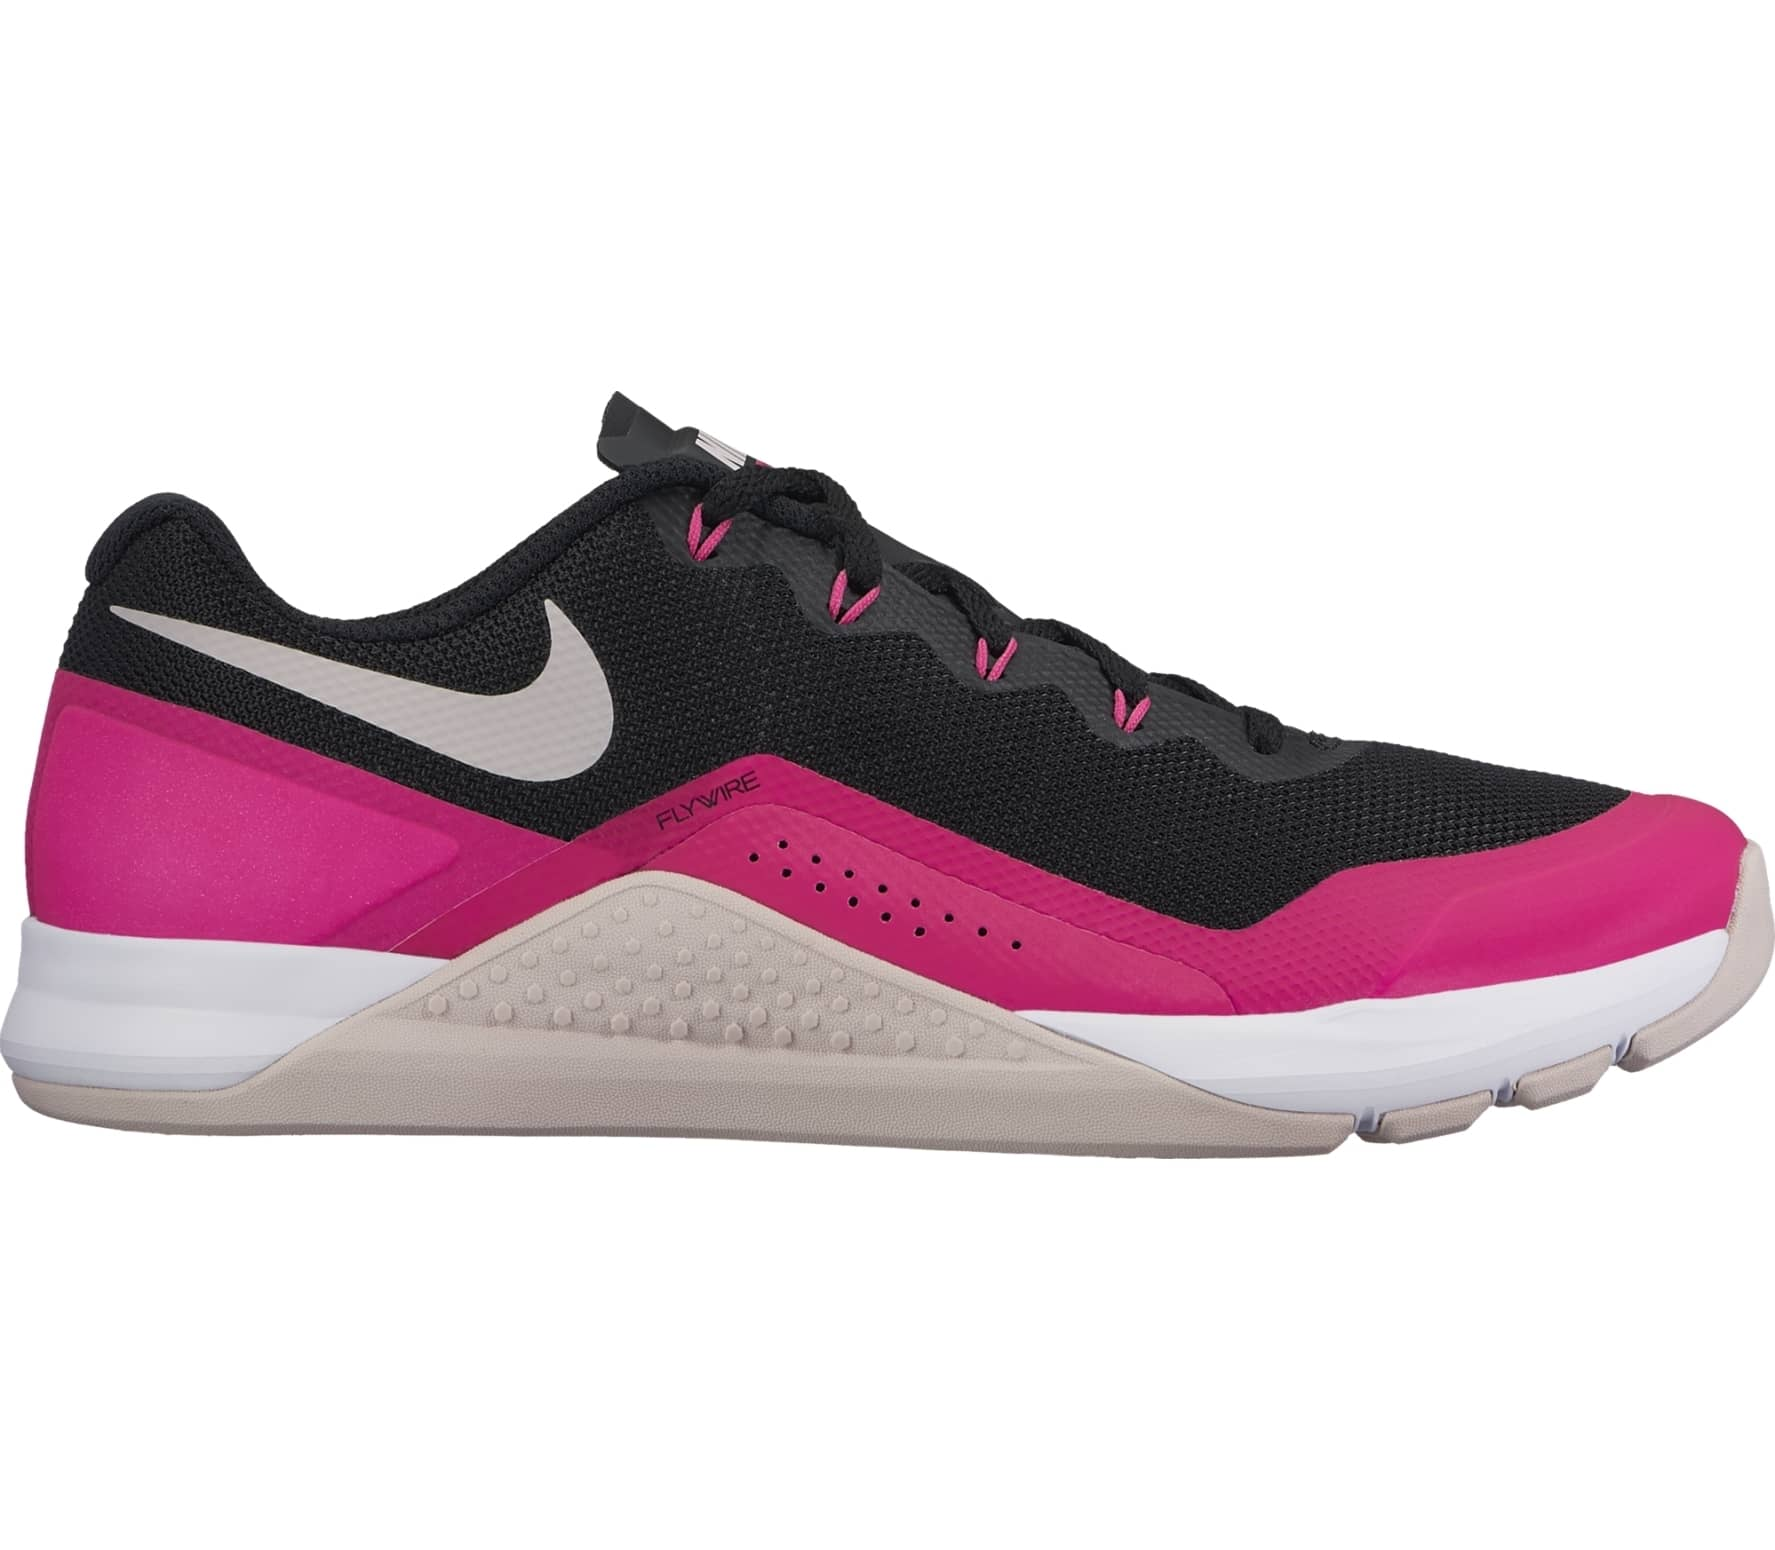 4a9d4006149a9 Nike - Metcon Repper DSX women s training shoes (black pink) - buy ...